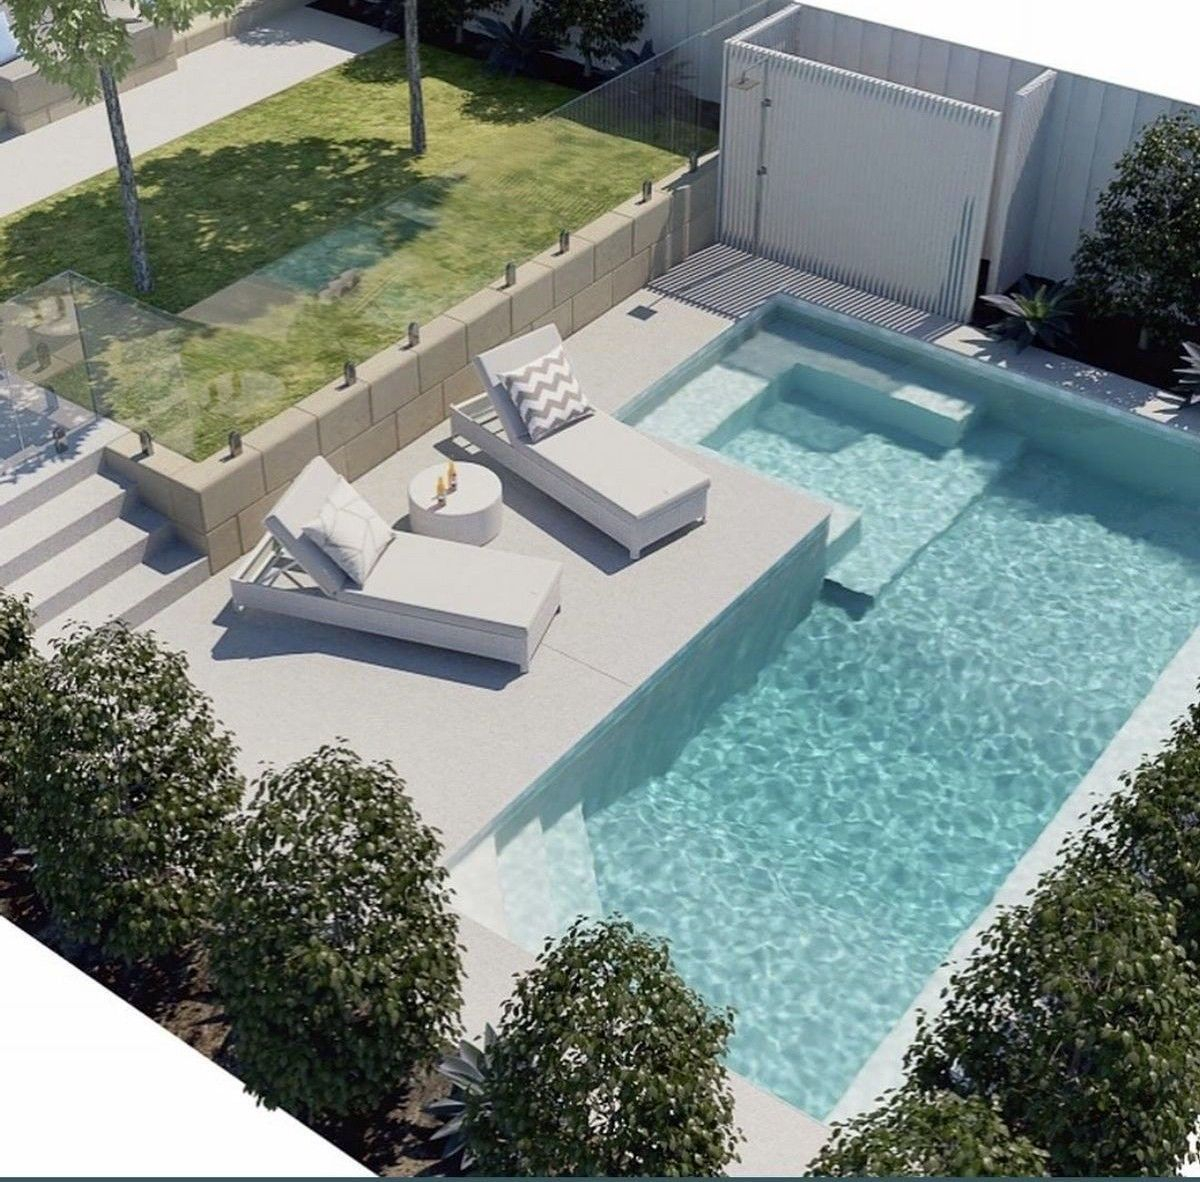 Inspiring Small Backyard Pool Design Ideas For Your Relaxing Place15